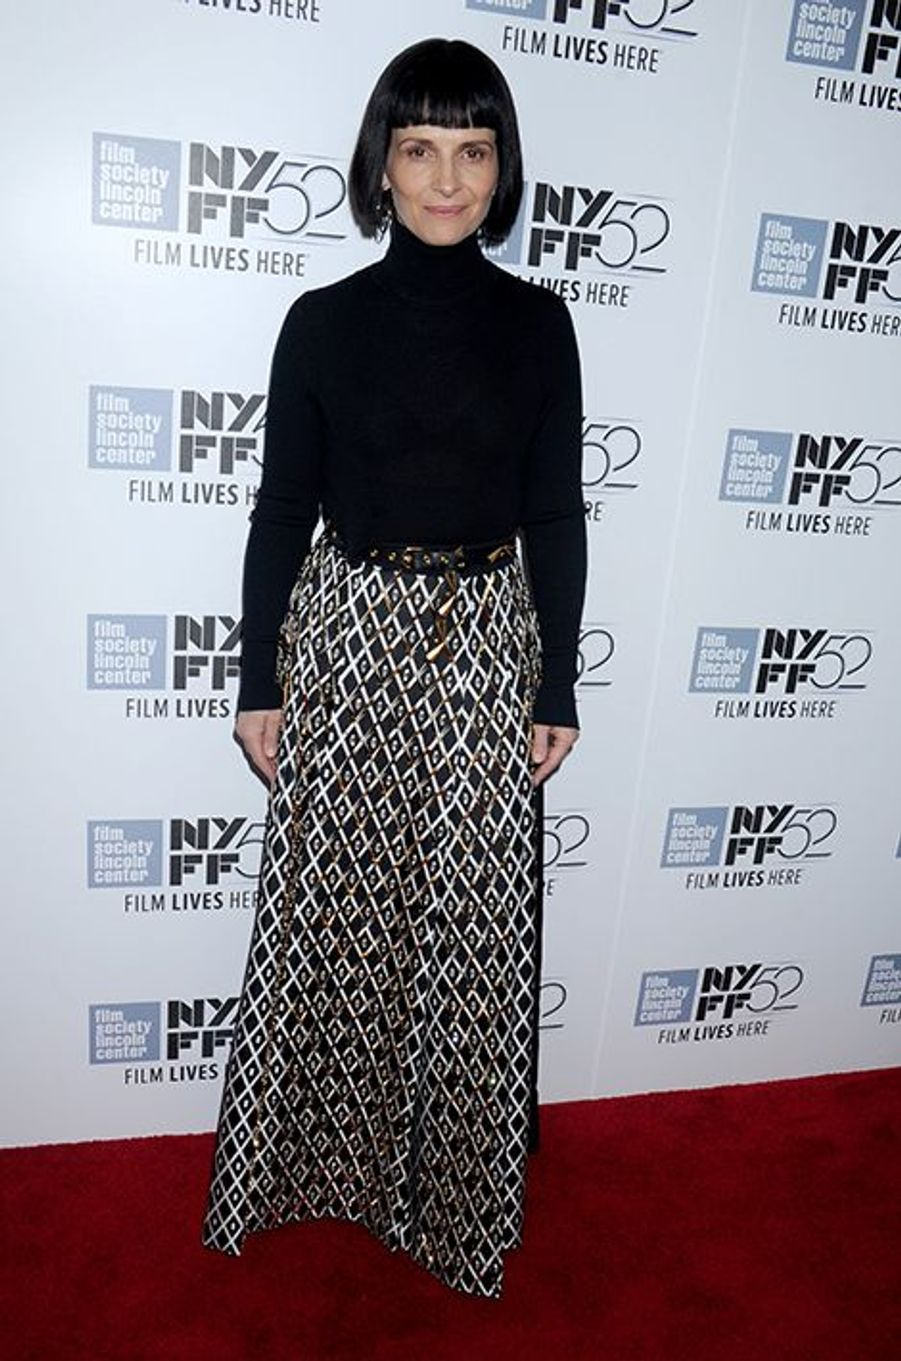 Juliette Binoche au Festival du film de New York le 8 octobre 2014